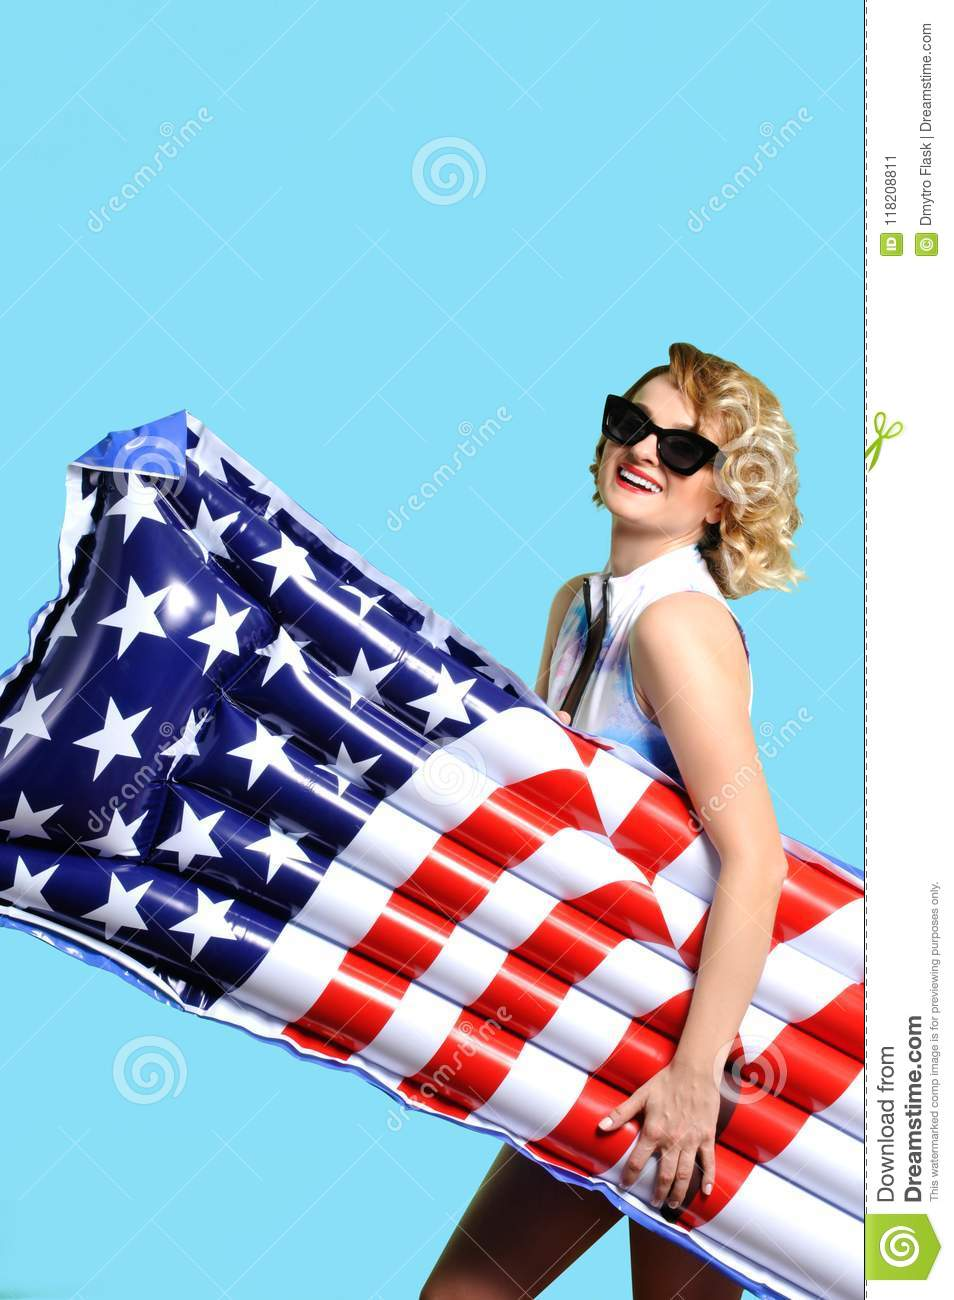 a6b1c4c1ce Enjoying suntan woman in bikini with inflatable mattress american flag on  the beach.